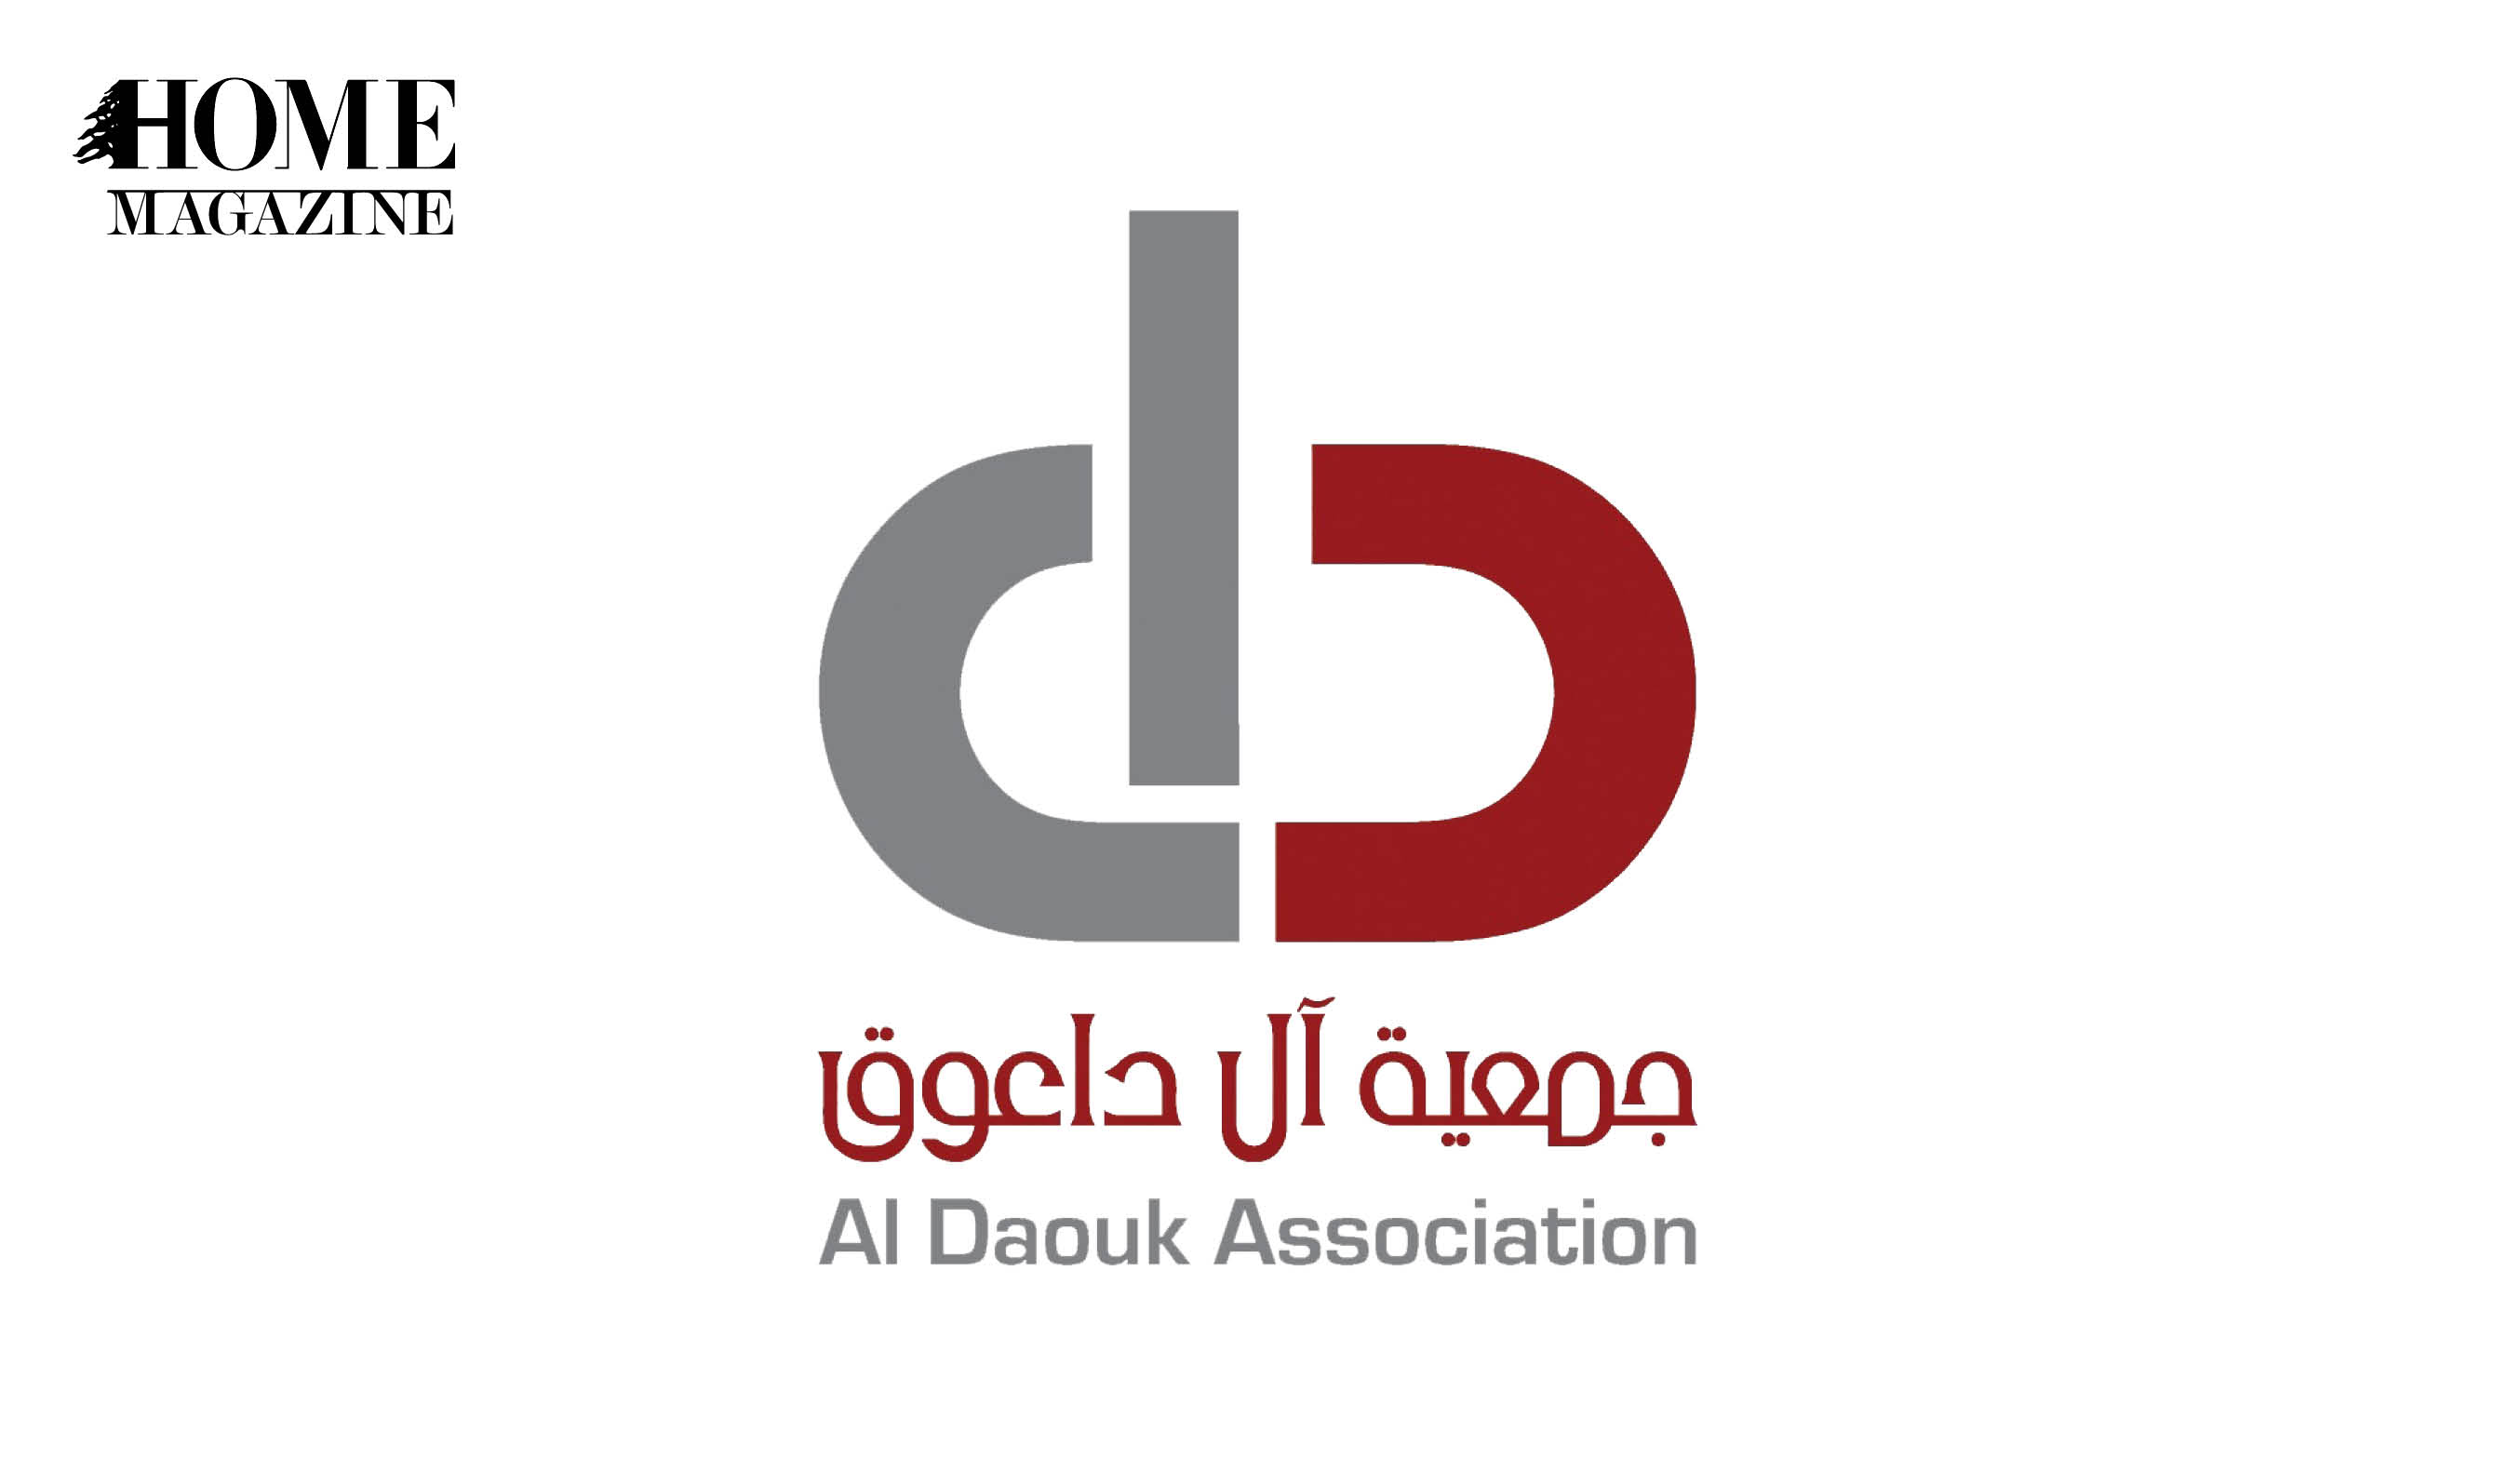 Grey and red logo with writing in Arabic and English for Al Daouk Association